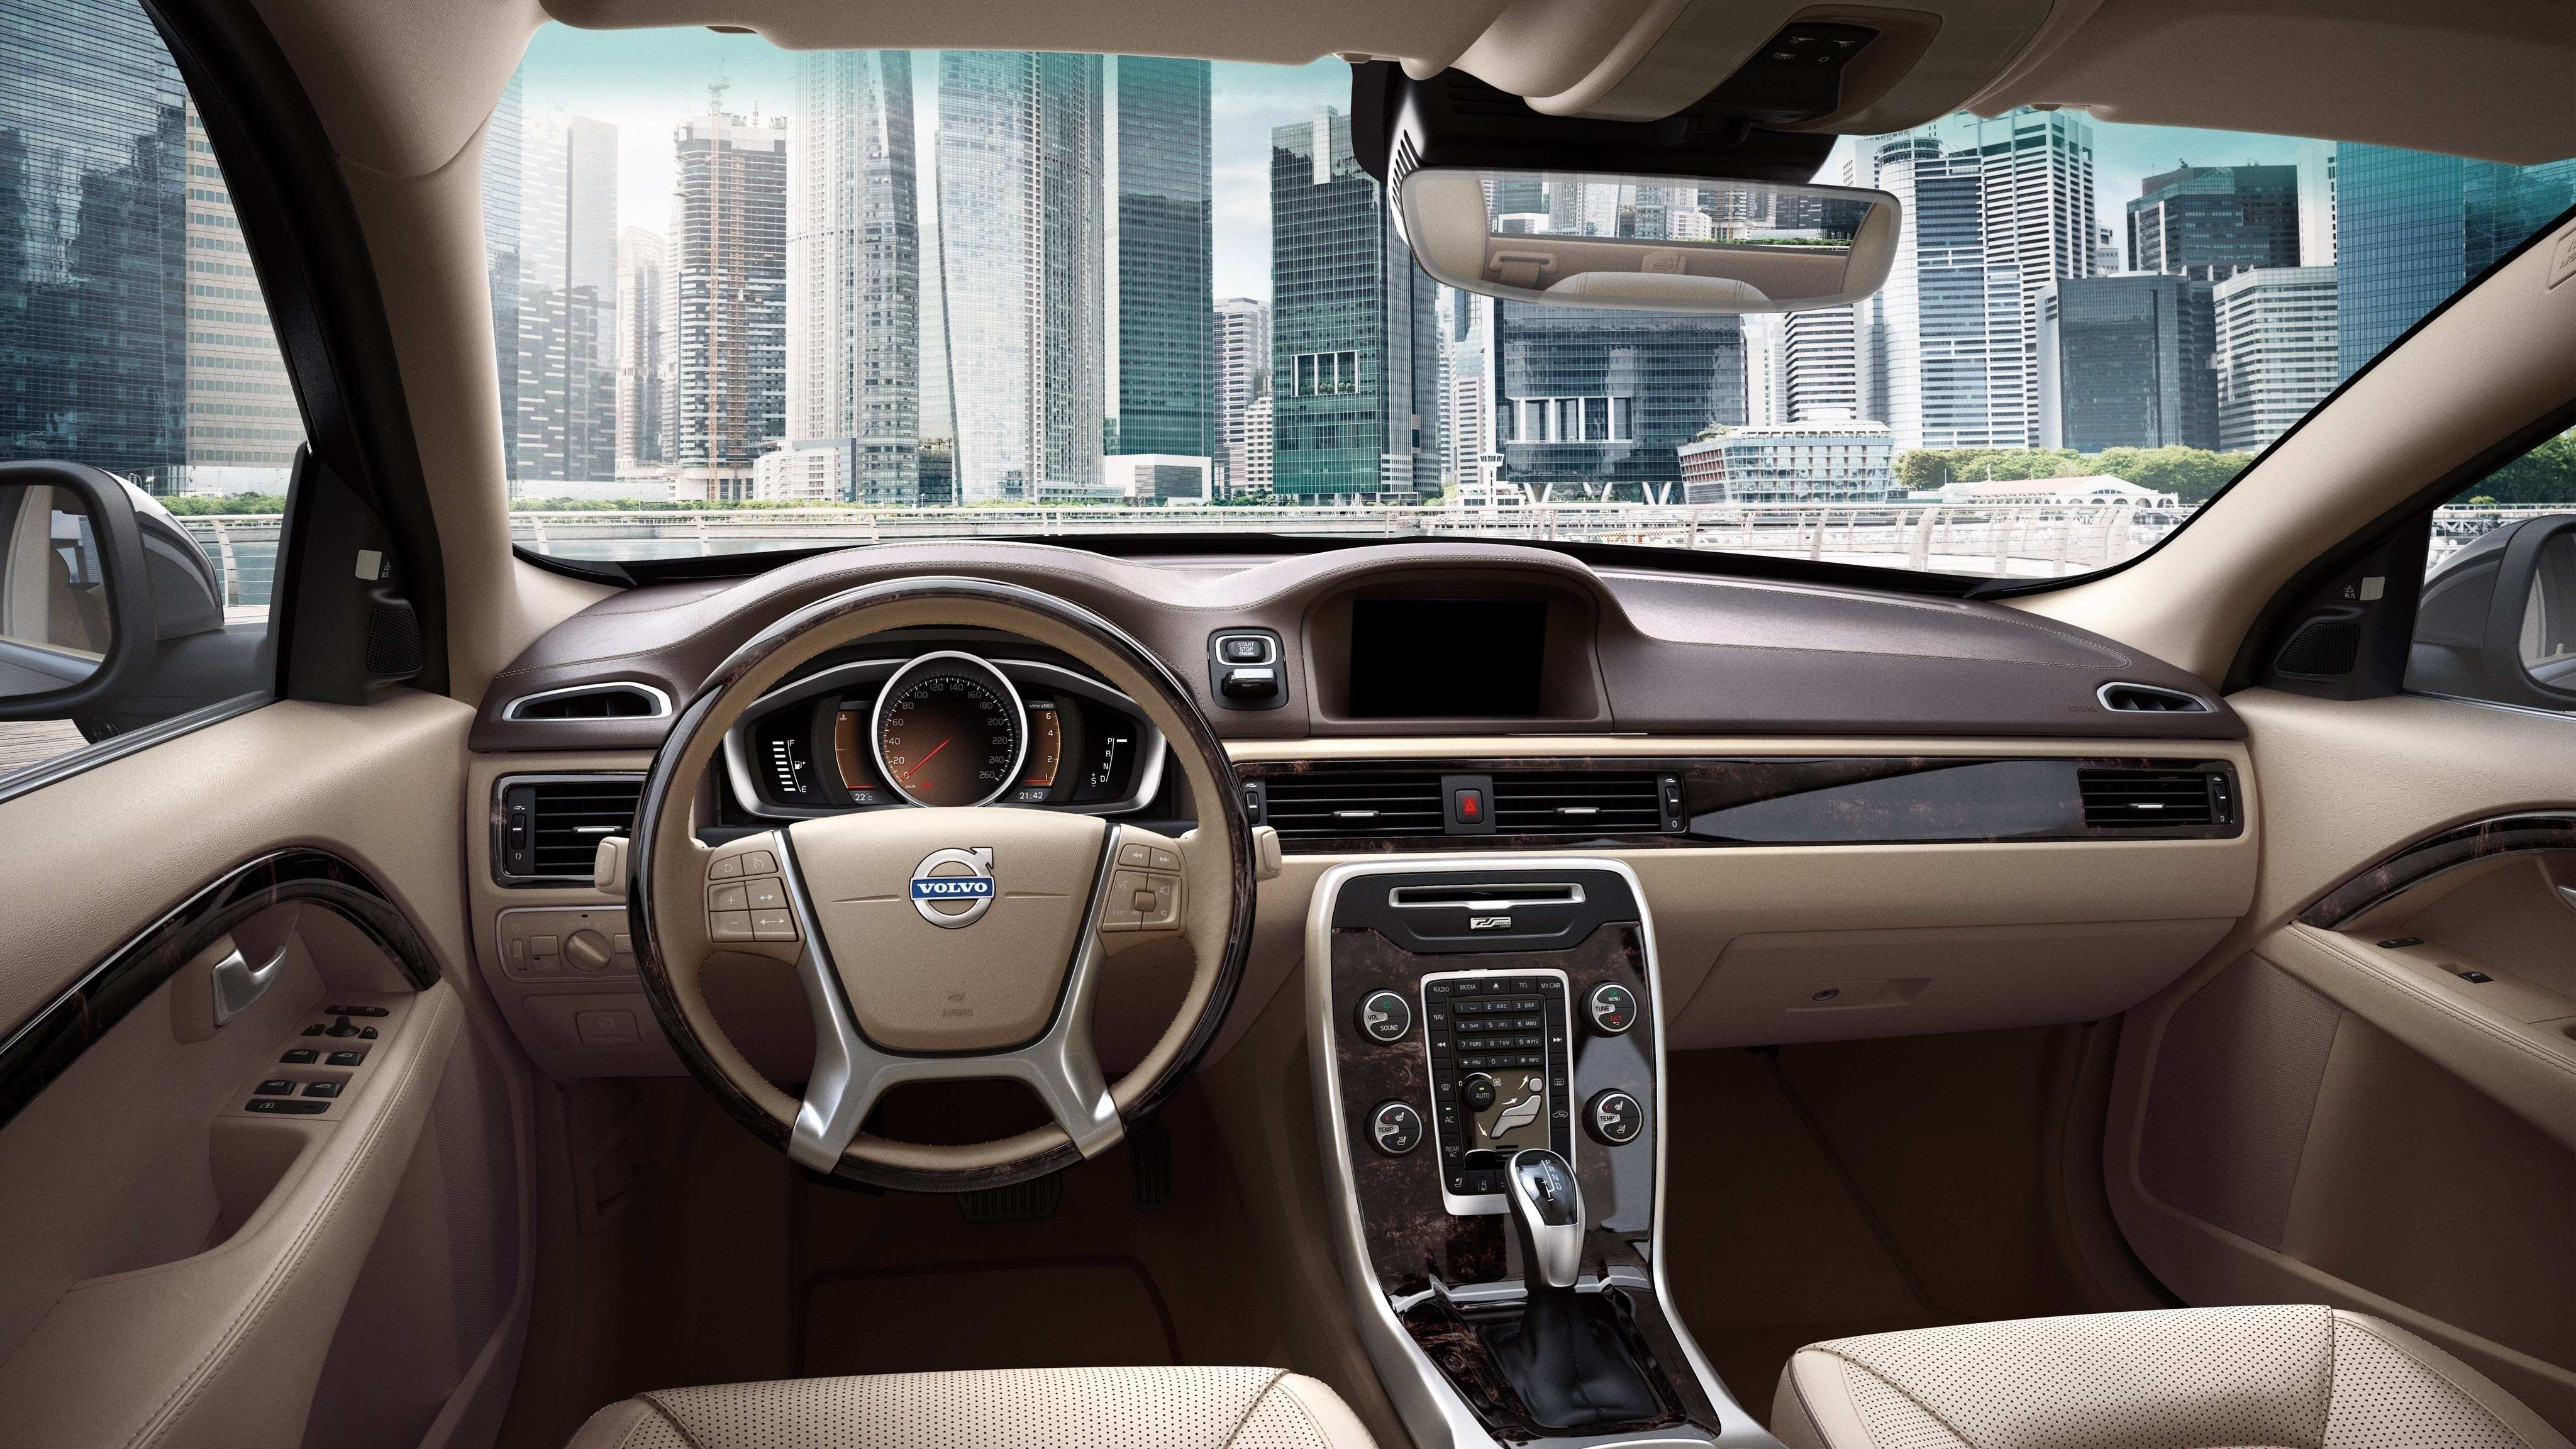 71 Best 2020 Volvo S80 Interior